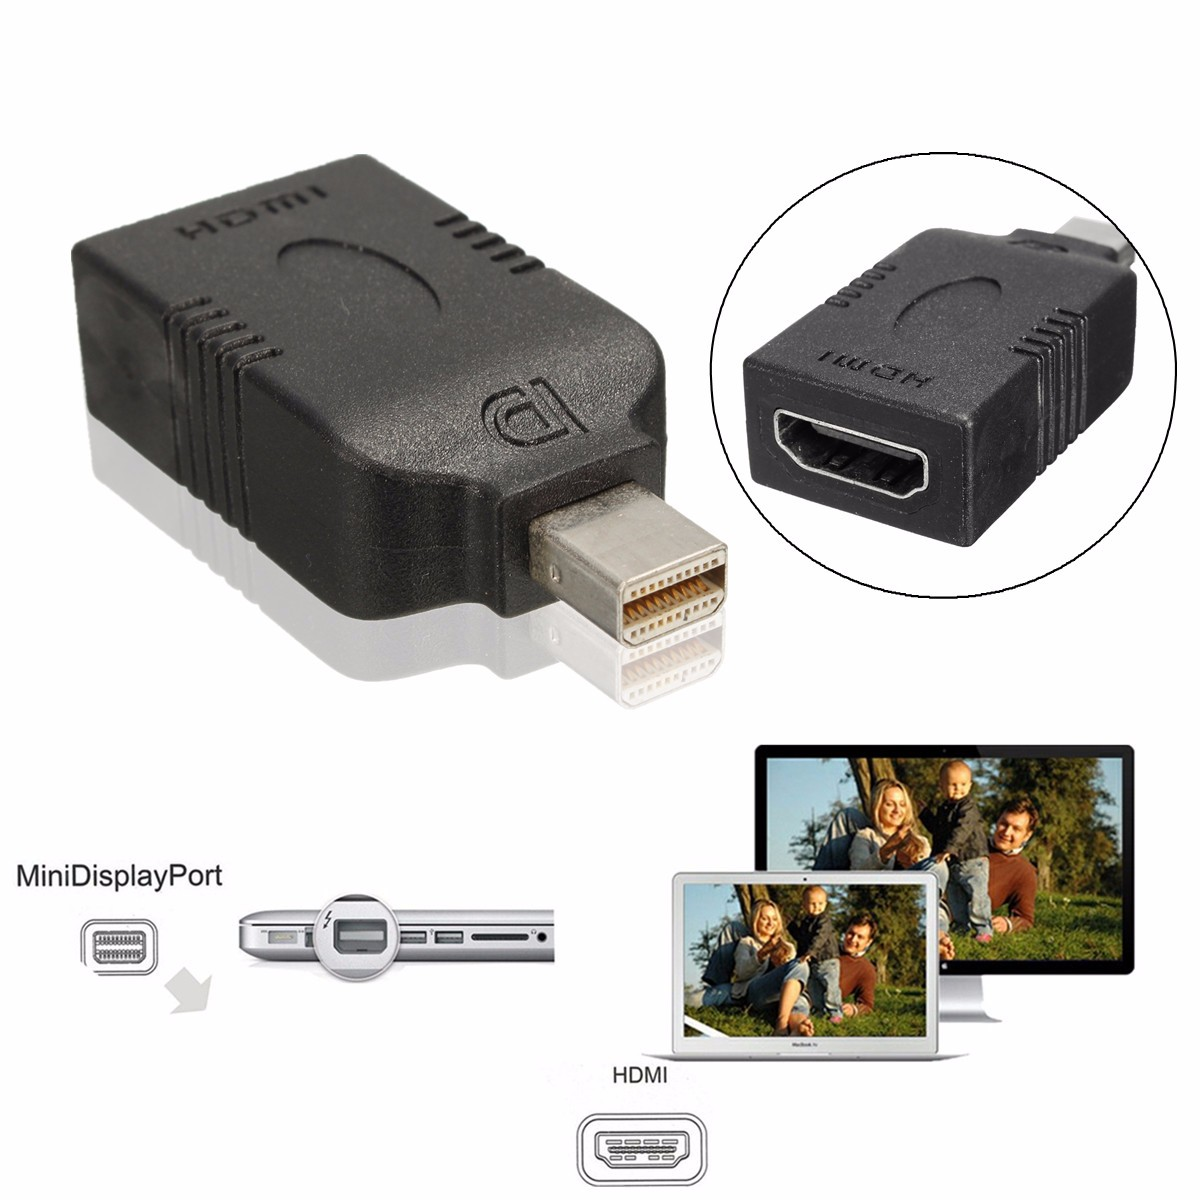 Mini Display Port Thunderbolt DP To HDMI Adapter Converter Cable Video Audio Connector For Mac For Macbook Pro Air 1080P(China (Mainland))